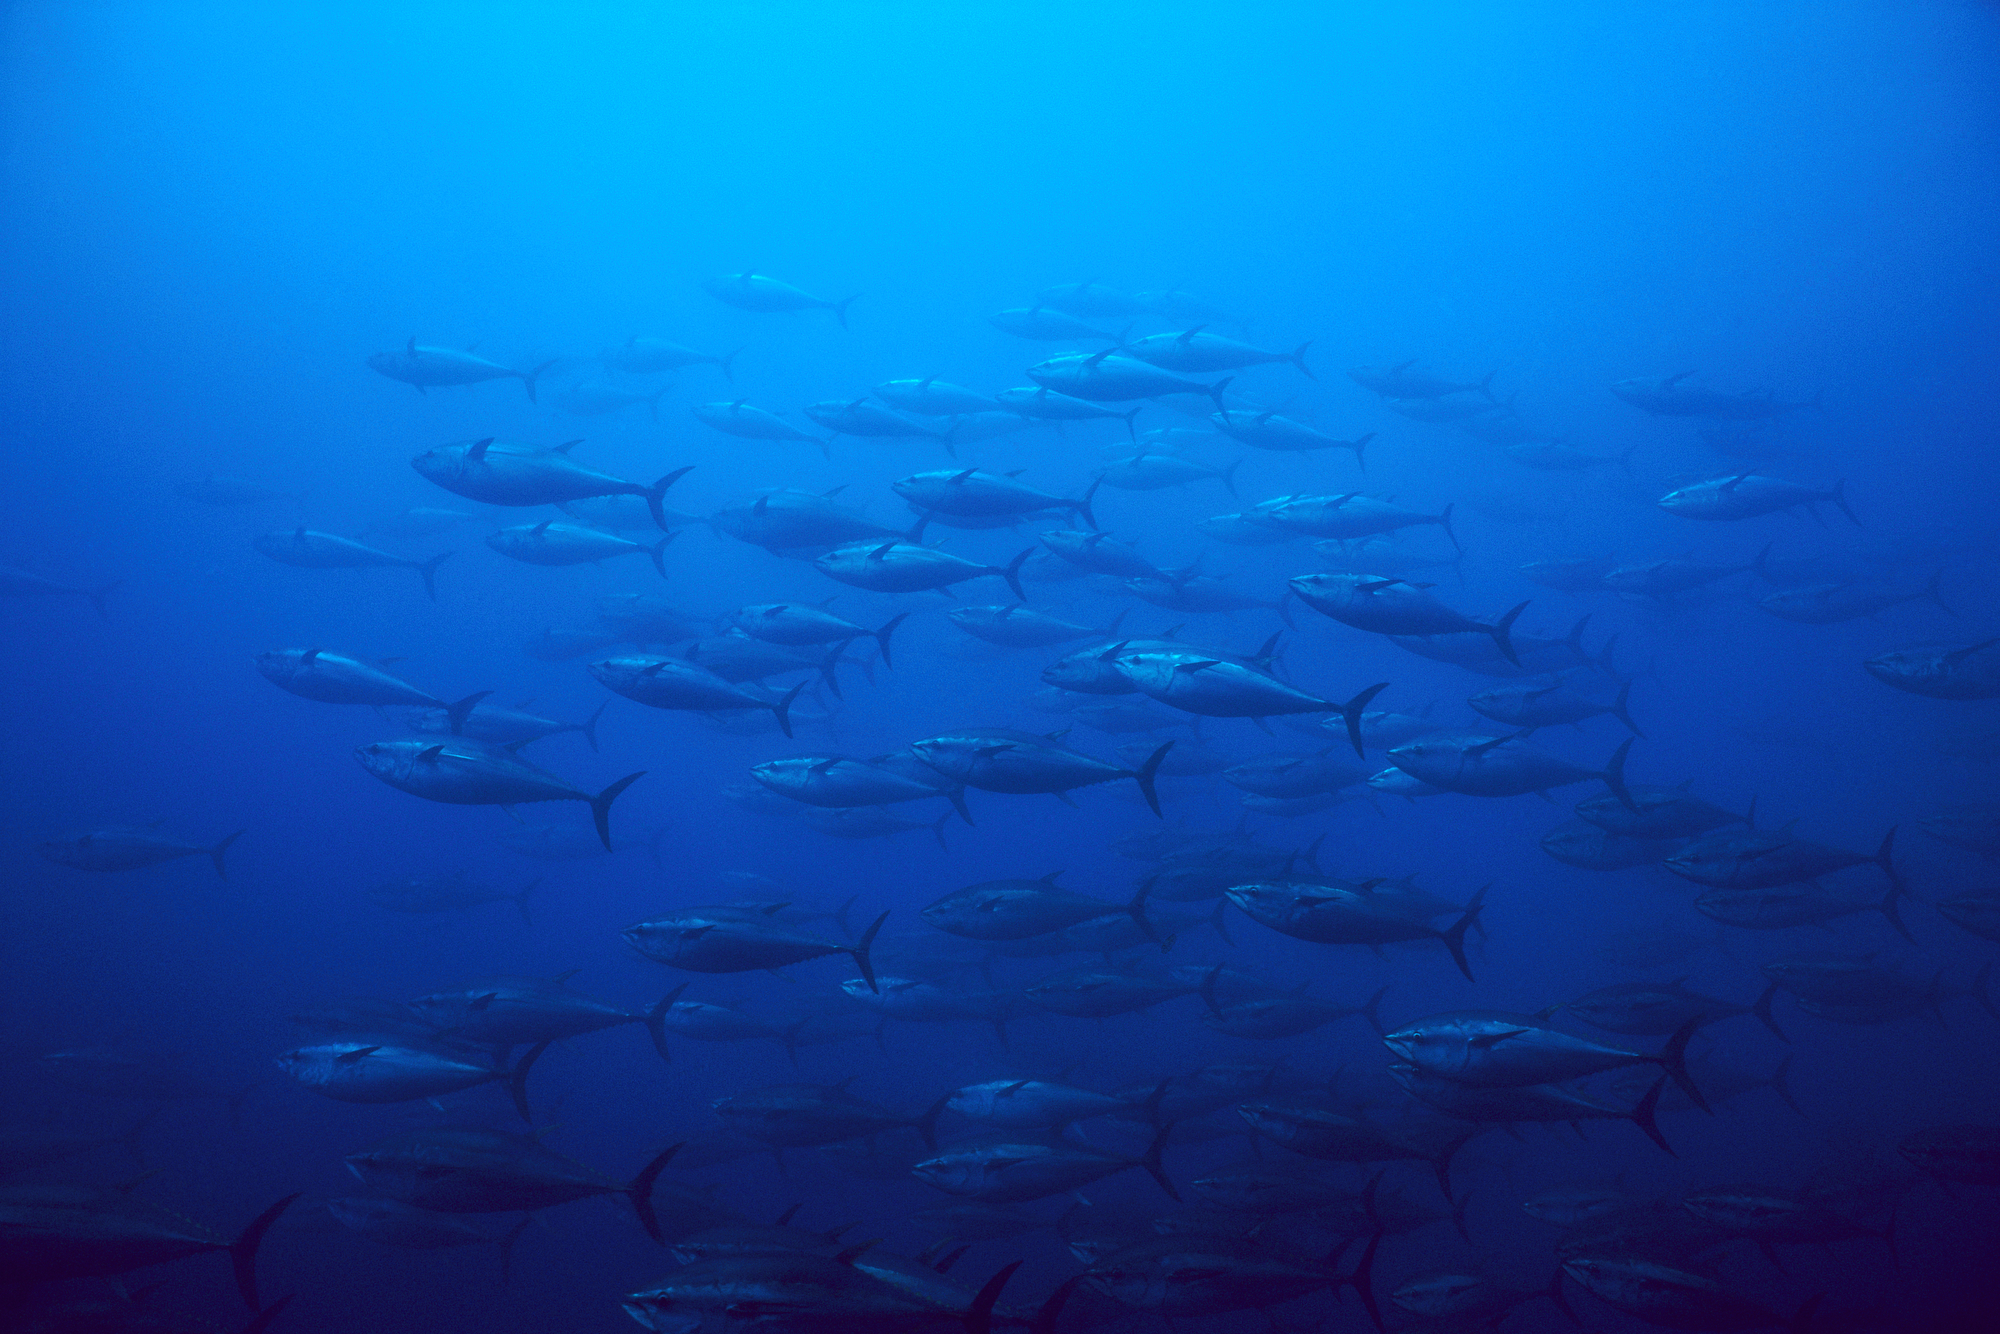 A school of bluefin tuna swimming in the depths of the Atlantic Ocean.